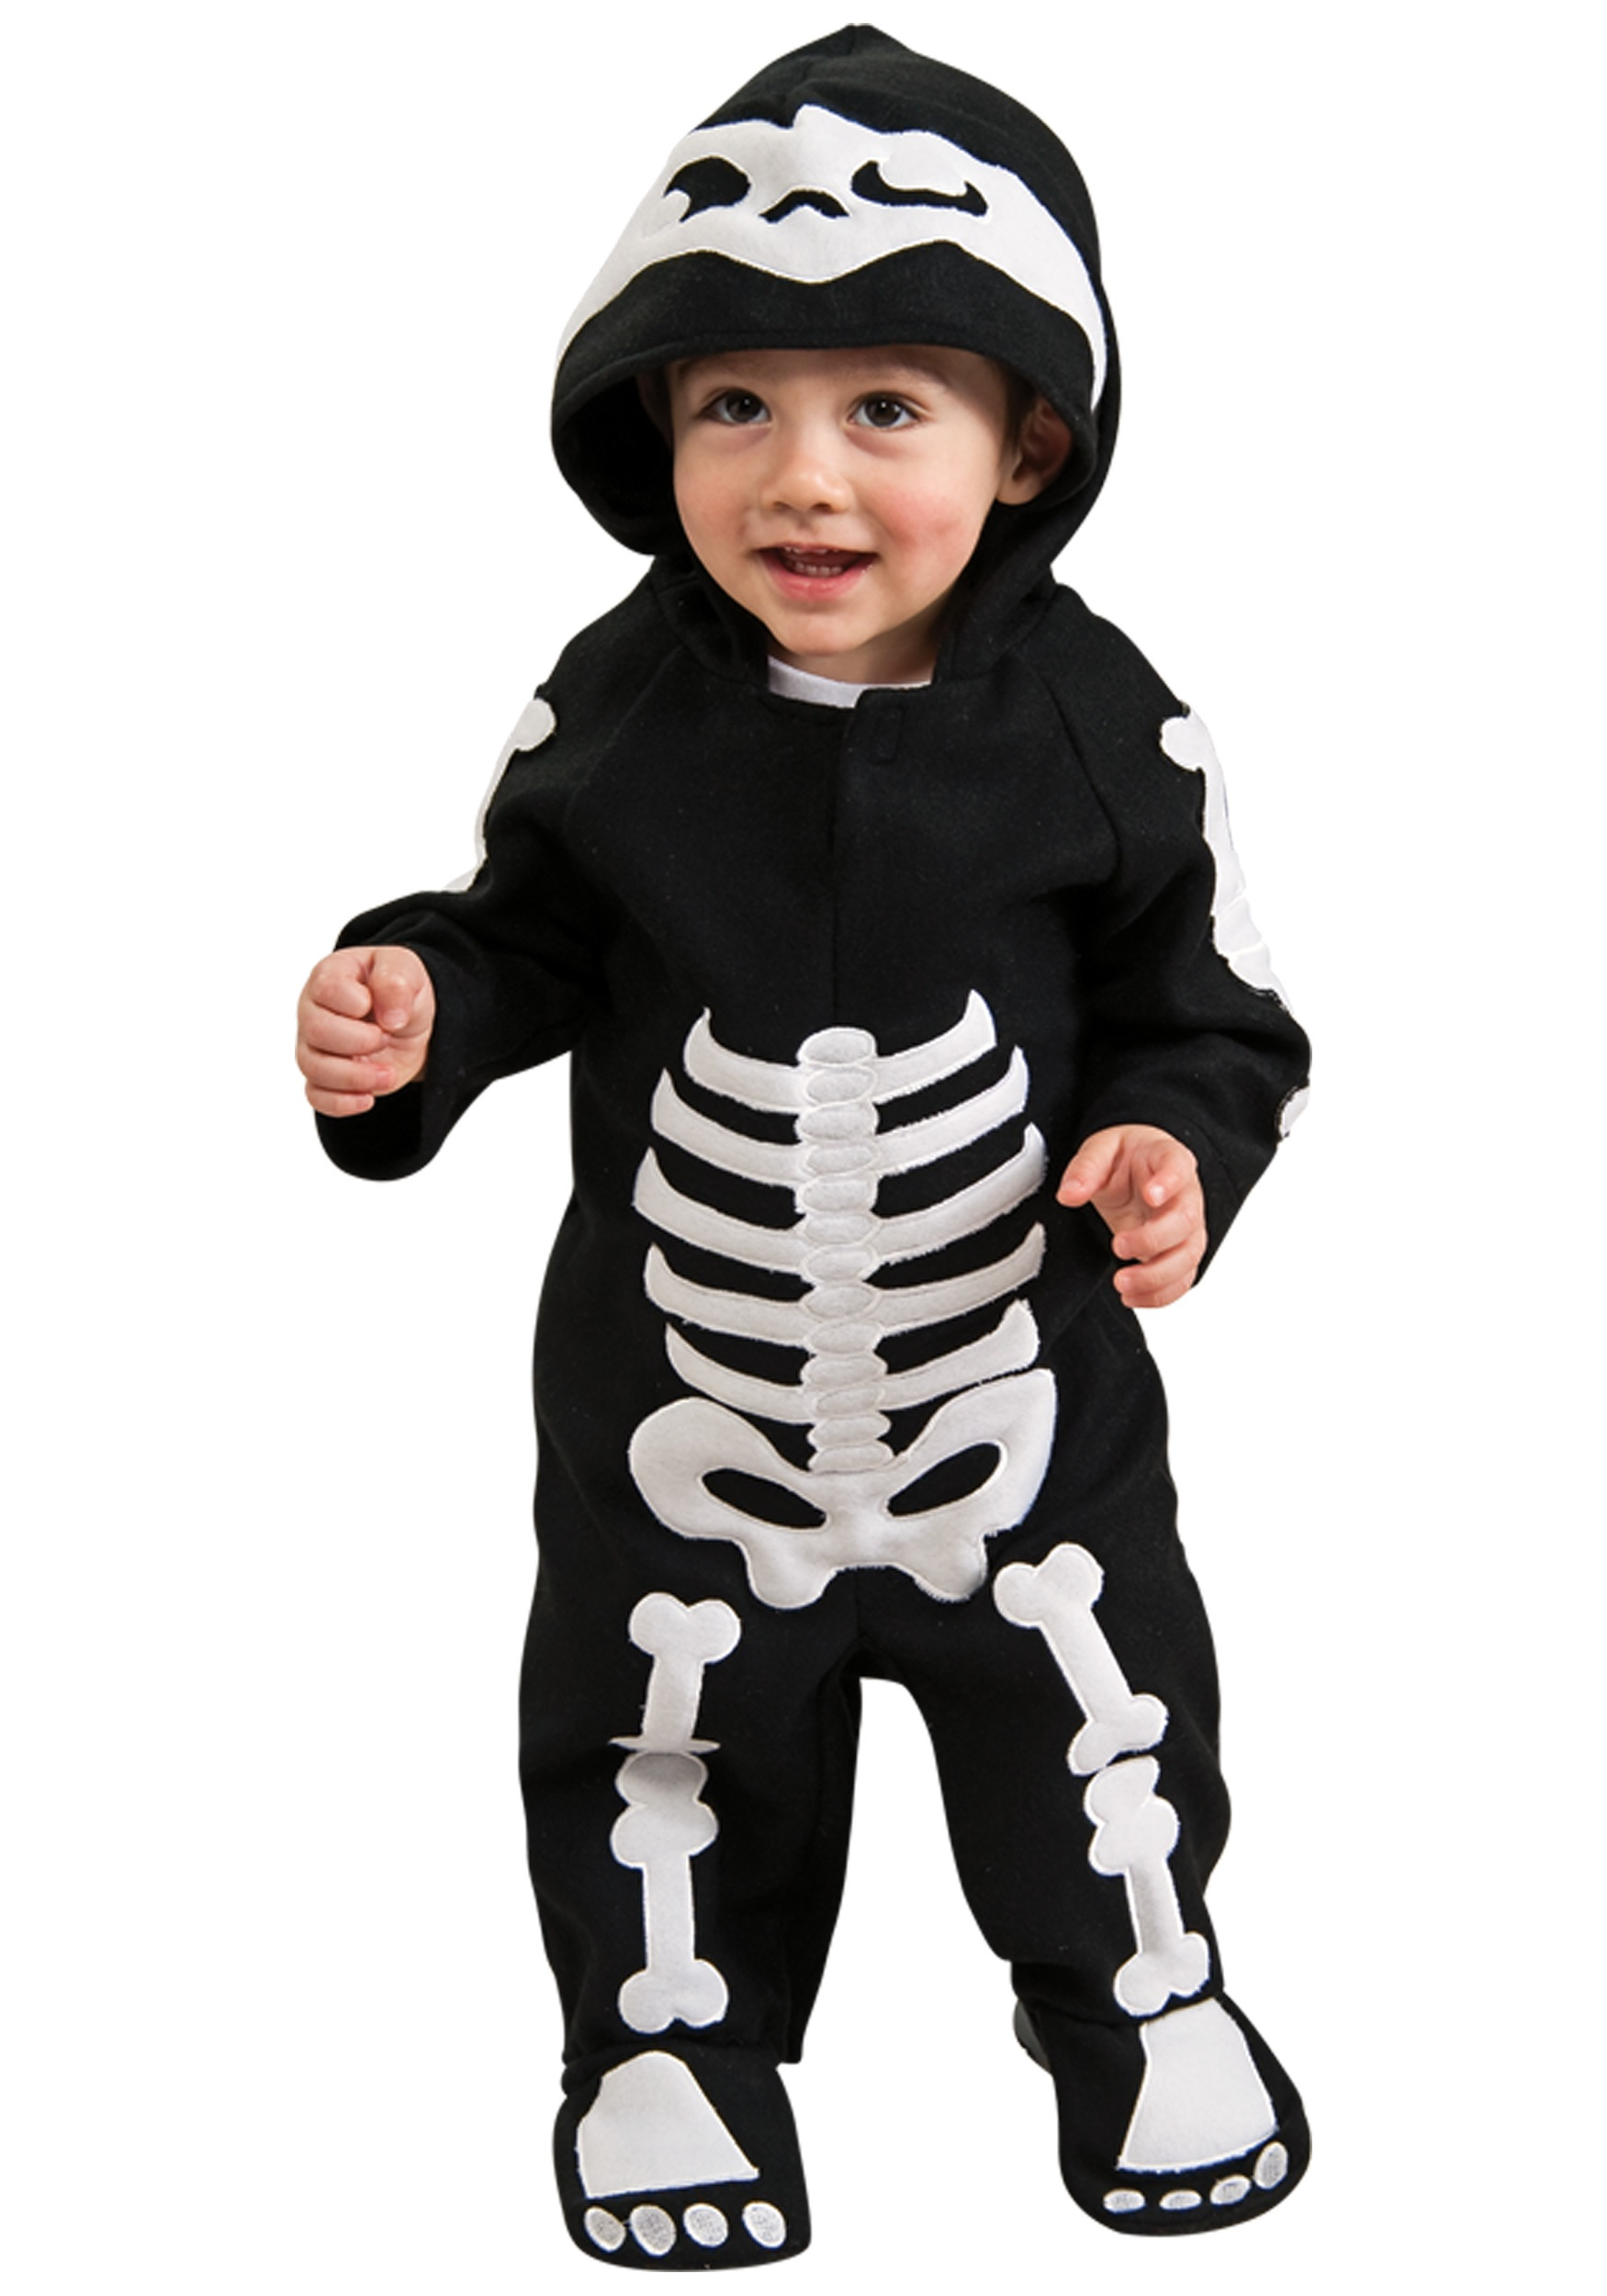 Skeleton cowboy costume - photo#16